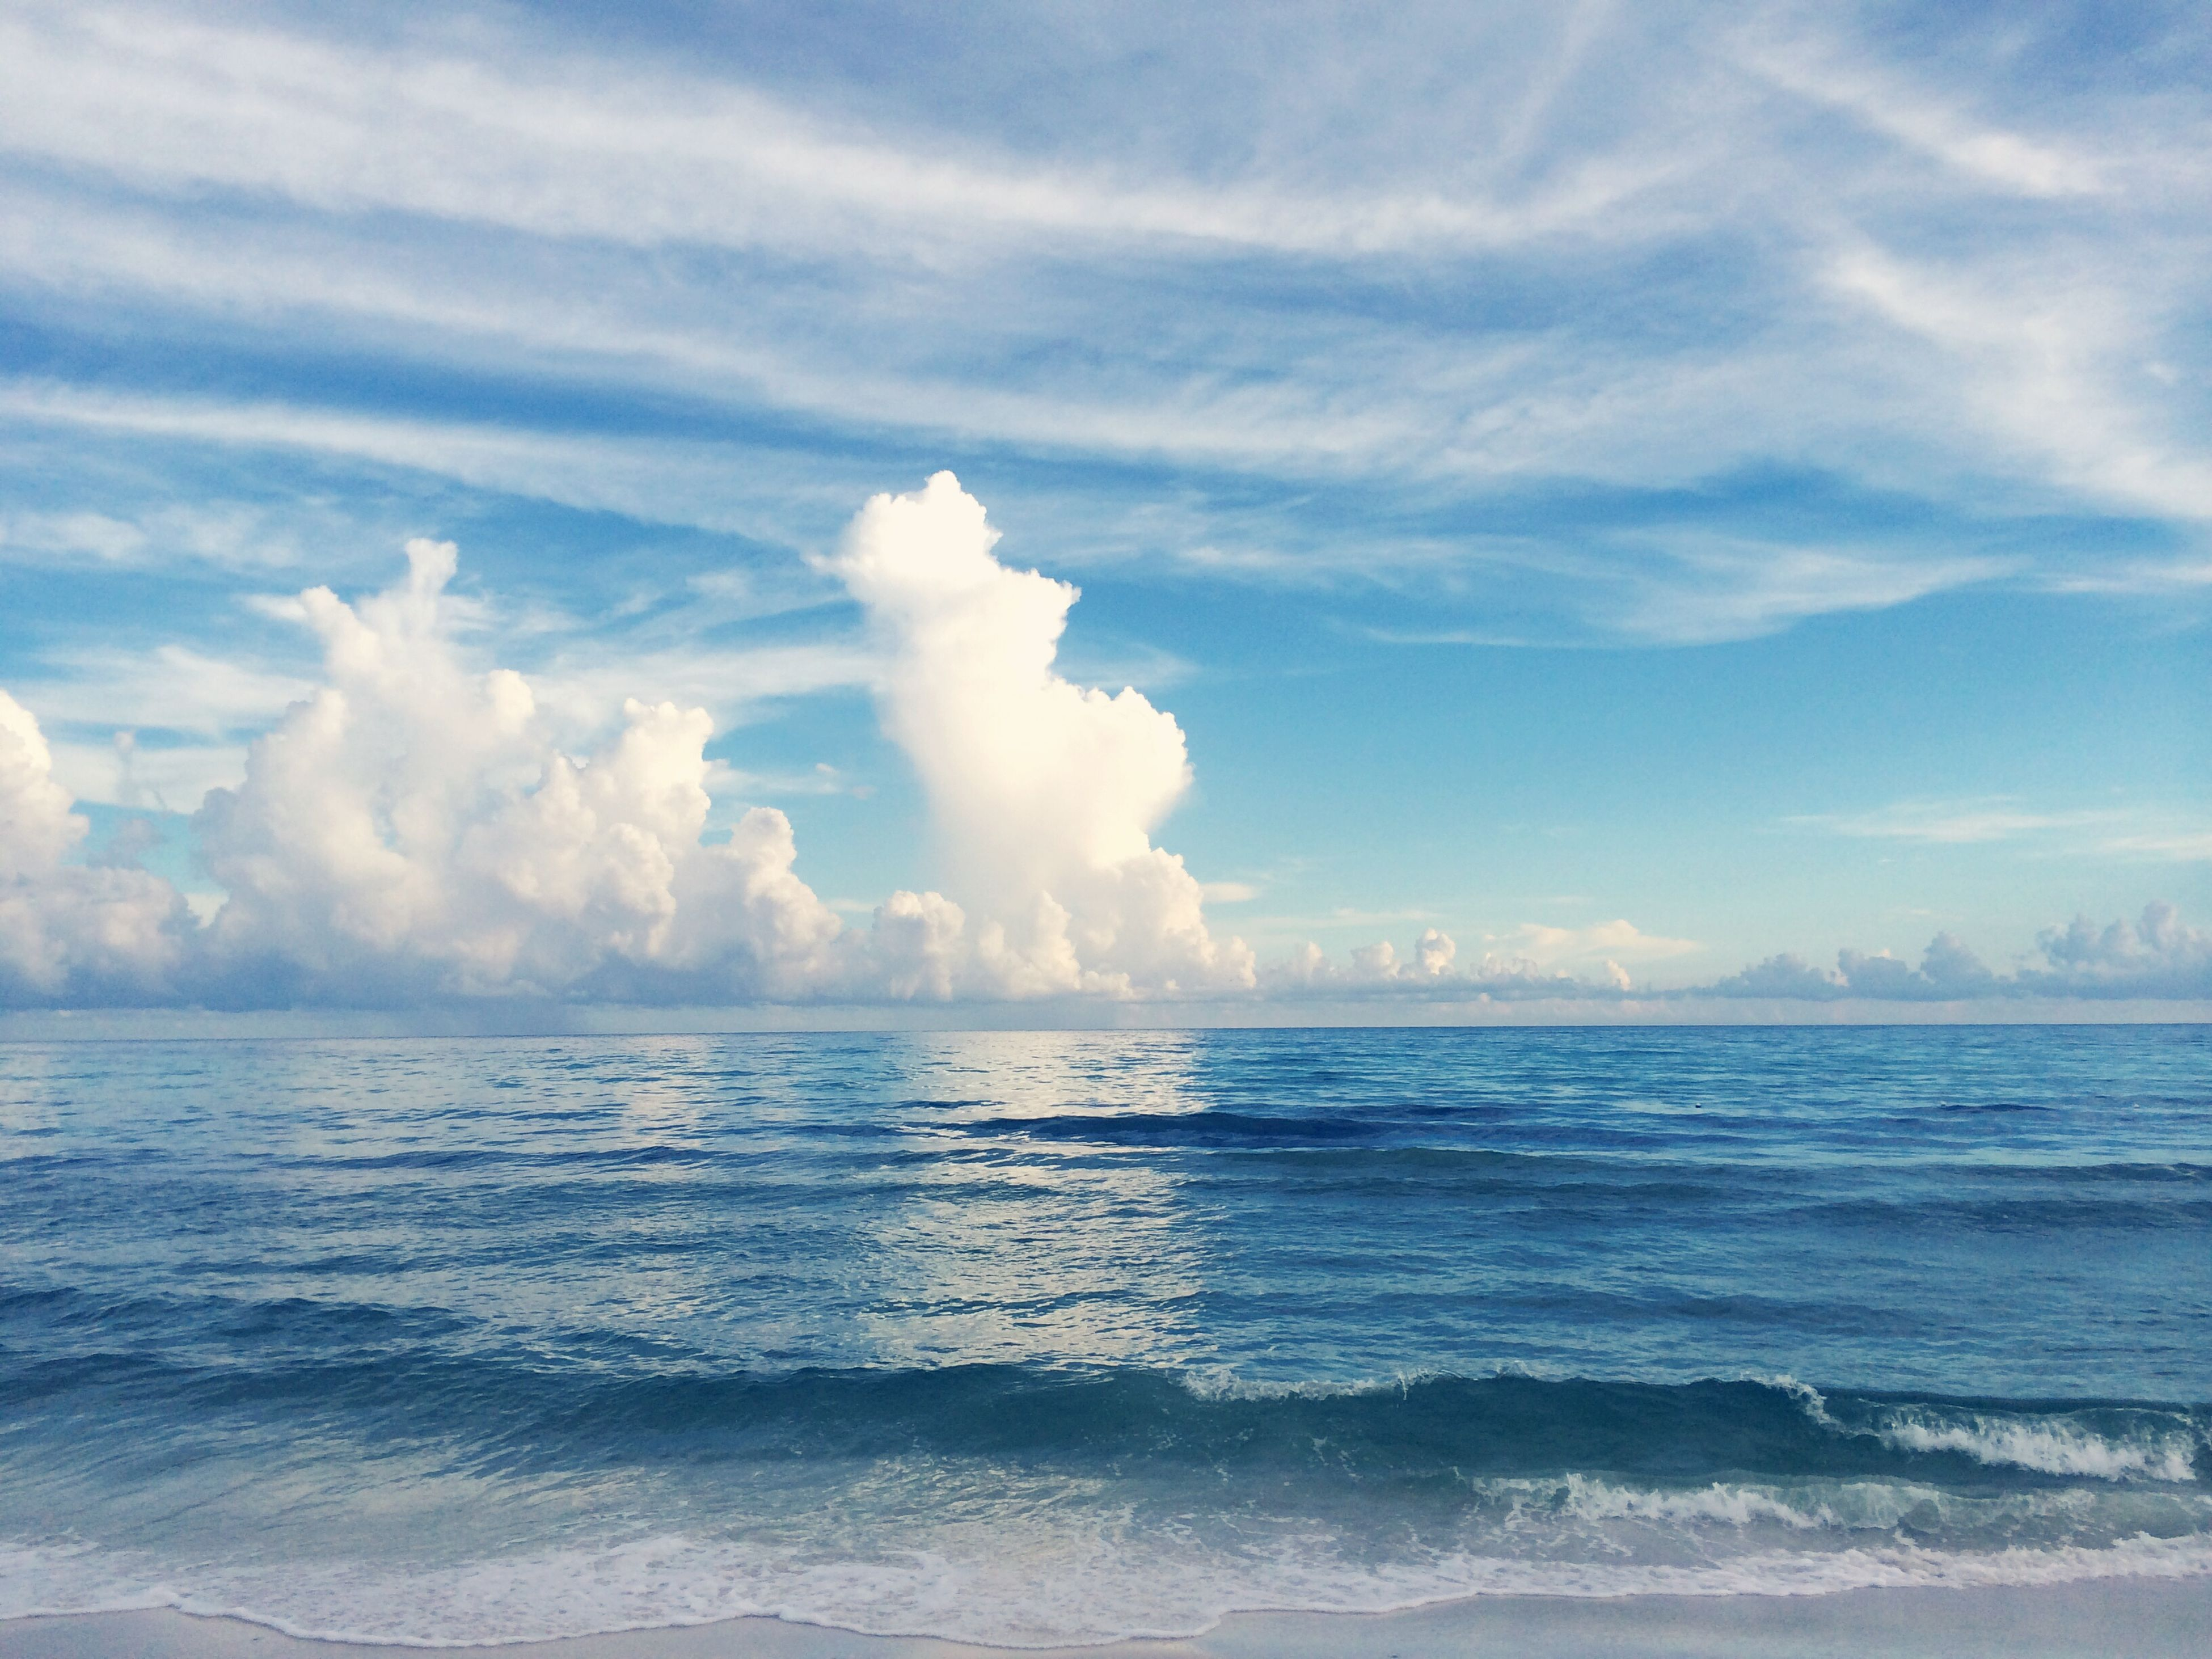 sea, water, horizon over water, sky, scenics, beauty in nature, tranquil scene, tranquility, cloud - sky, beach, nature, wave, cloudy, idyllic, cloud, shore, waterfront, seascape, blue, surf